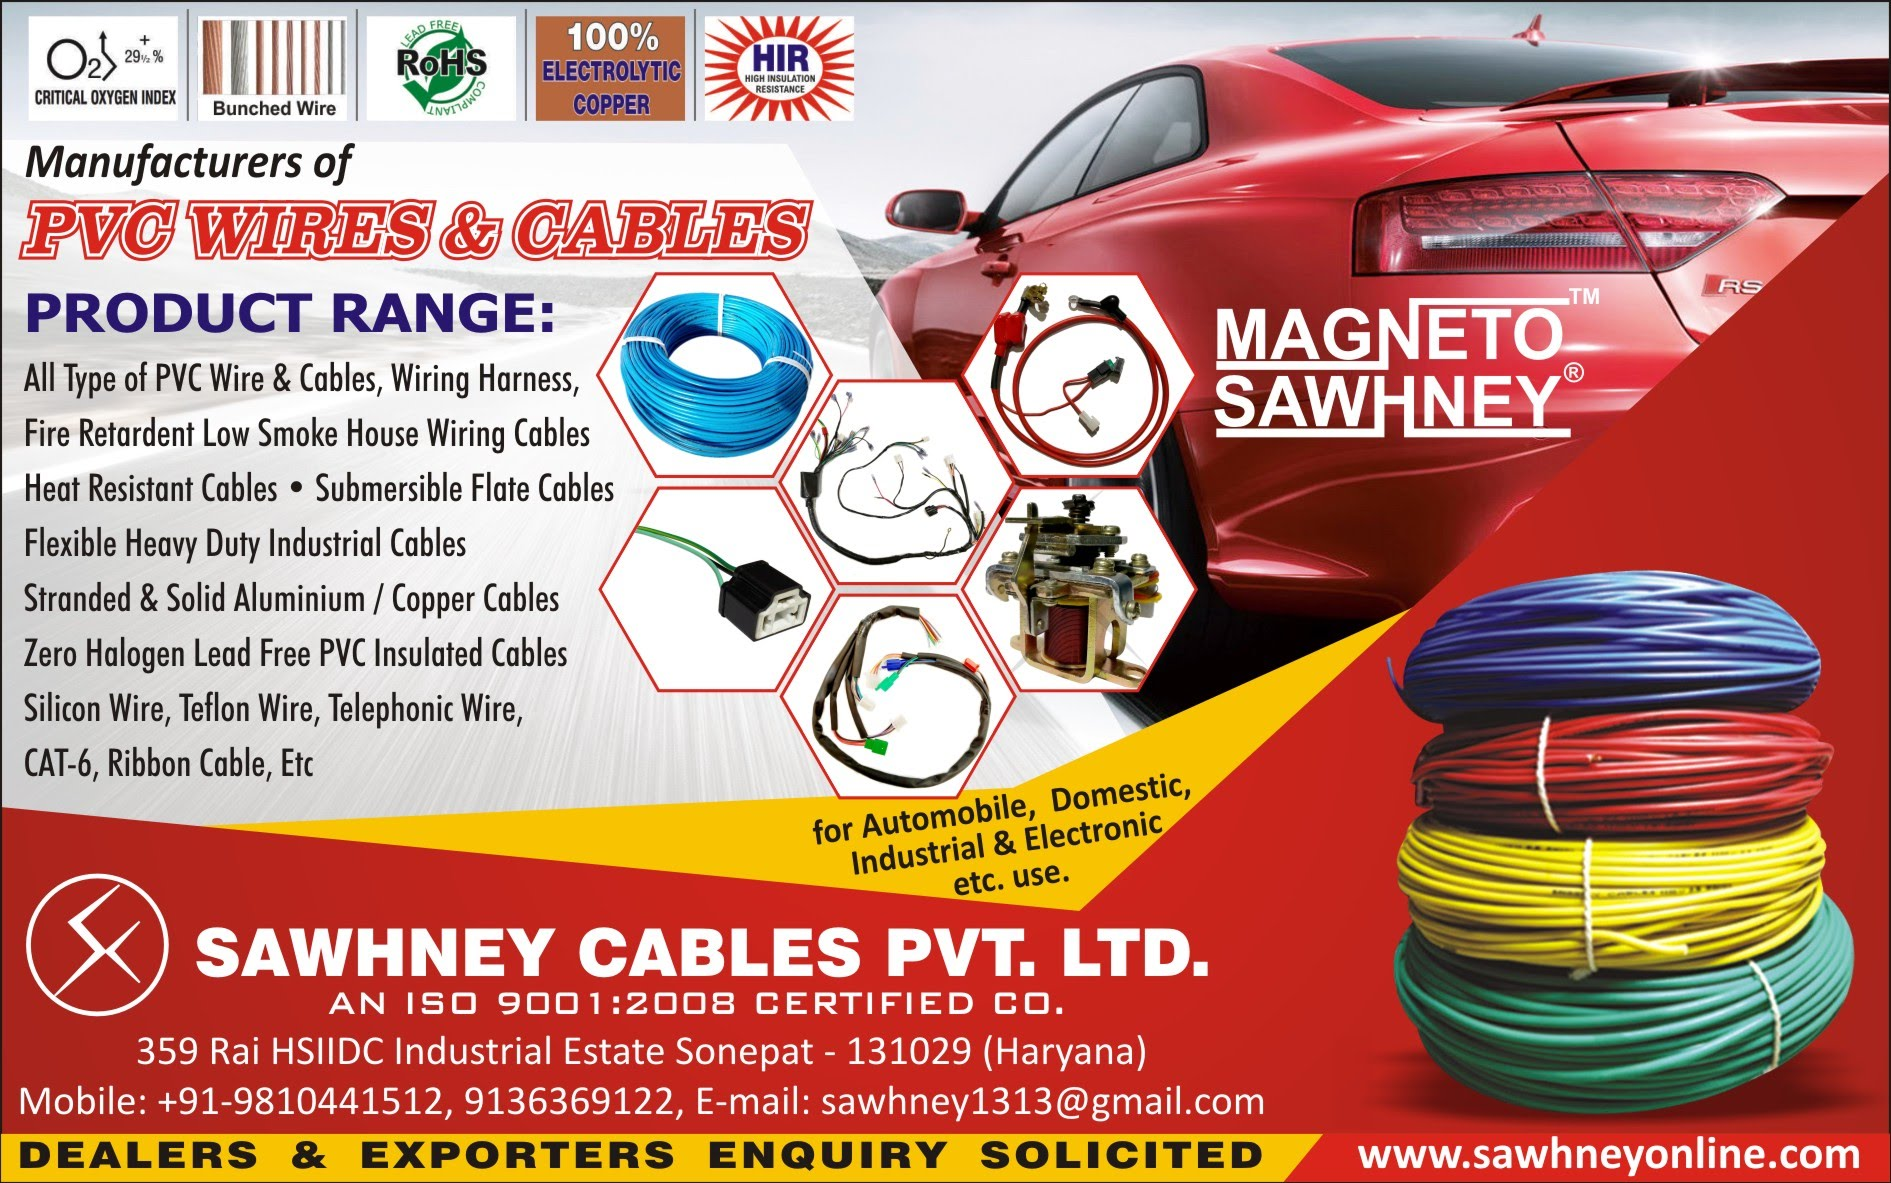 Products All Kinds Of Pvc Wires Cables Wiring Harness Product From Procuring Raw Materials And Manufacturing To The Finishing We Take Care Necessary Steps